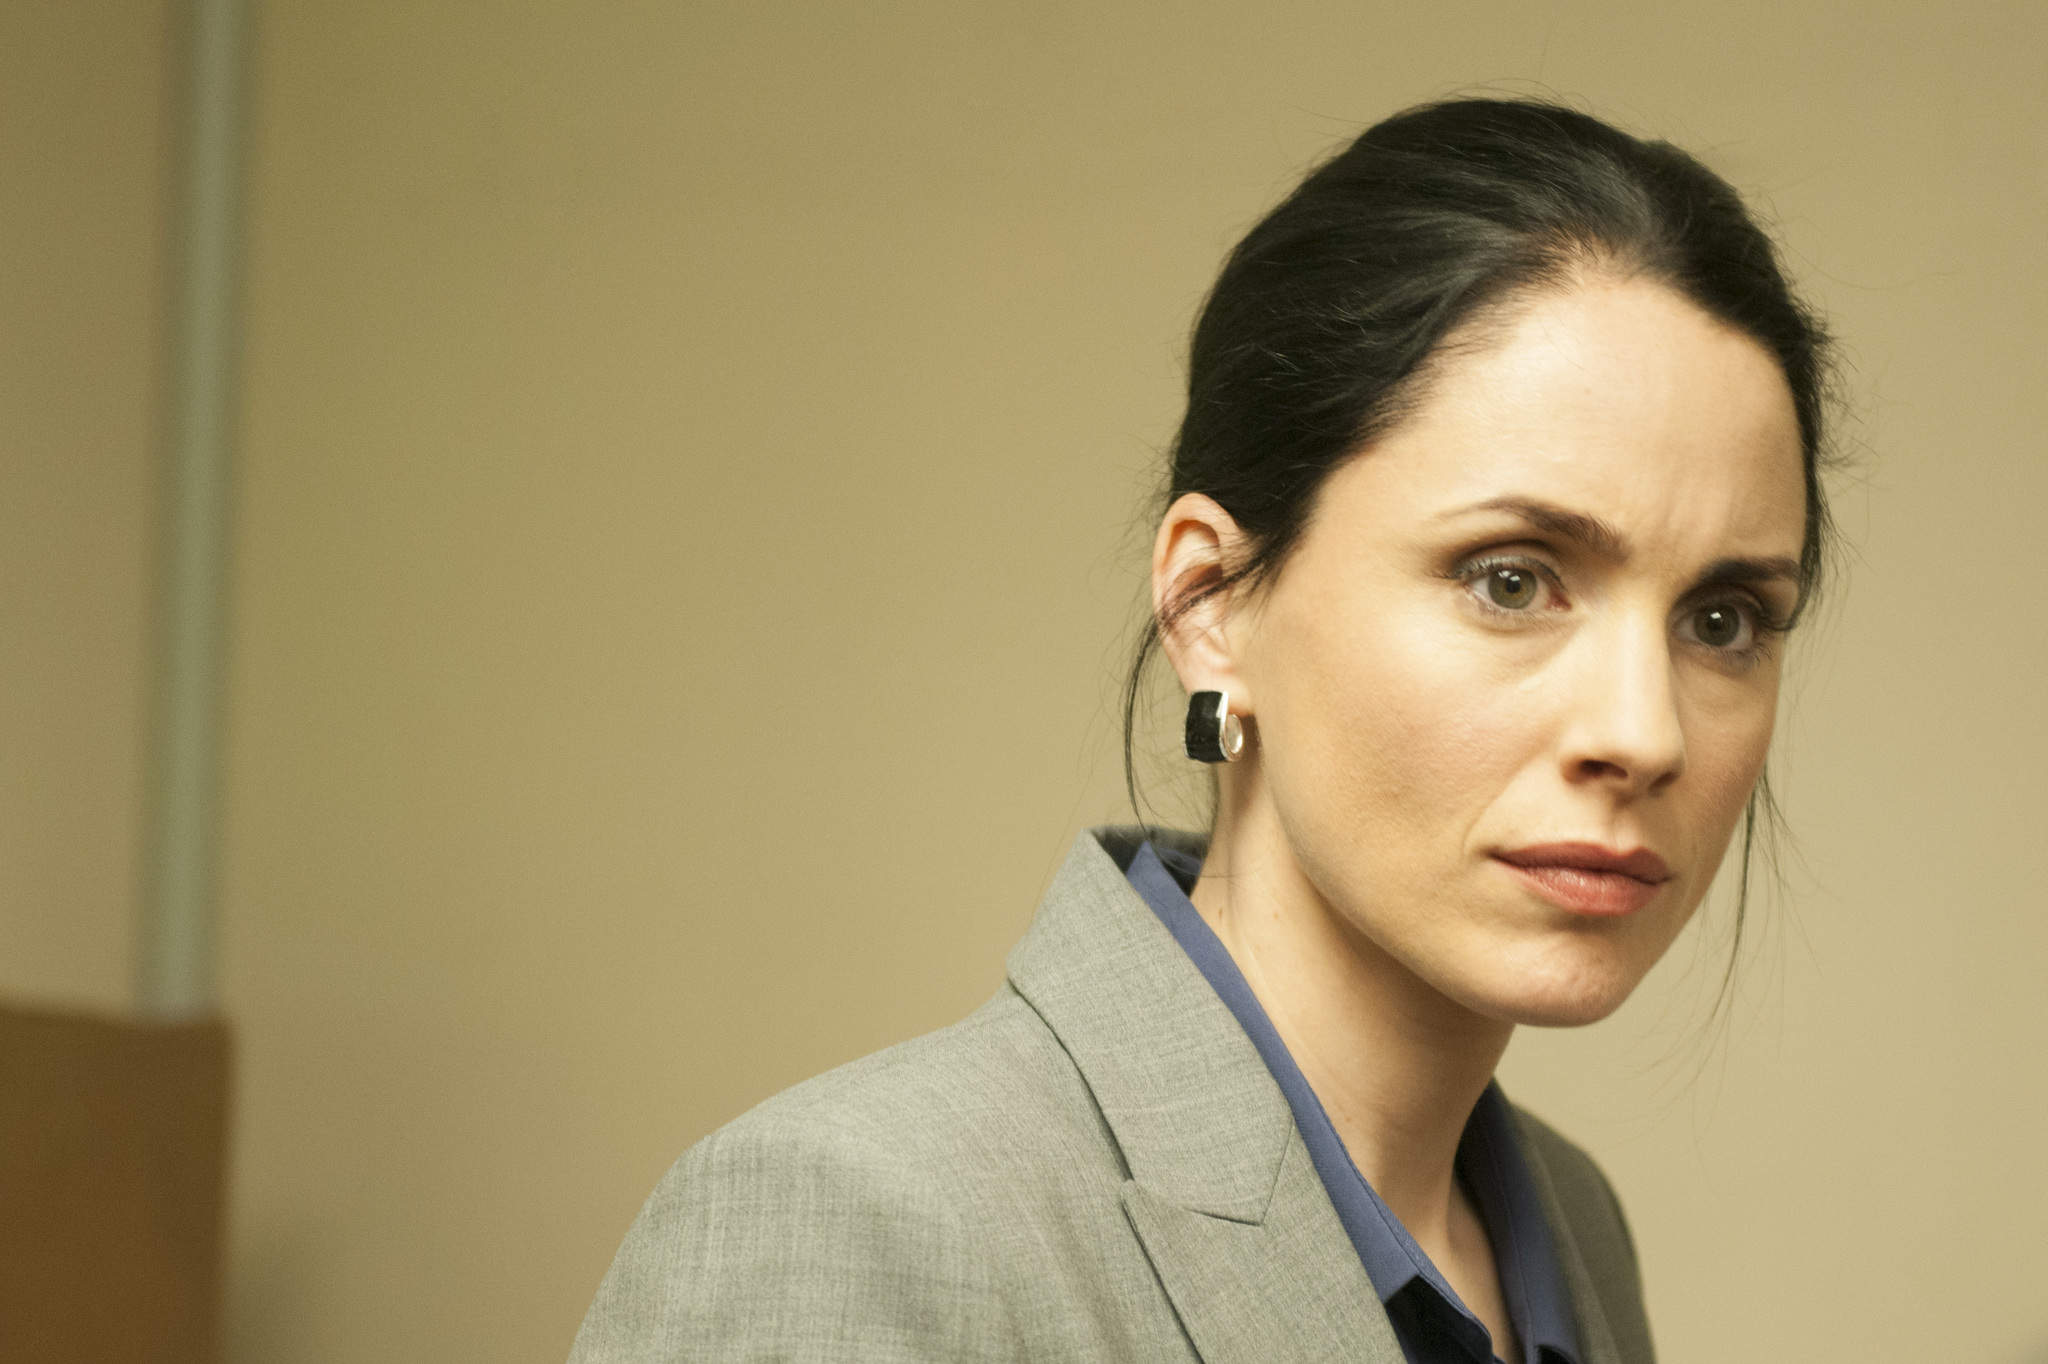 2048x1364 - Laura Fraser Wallpapers 10